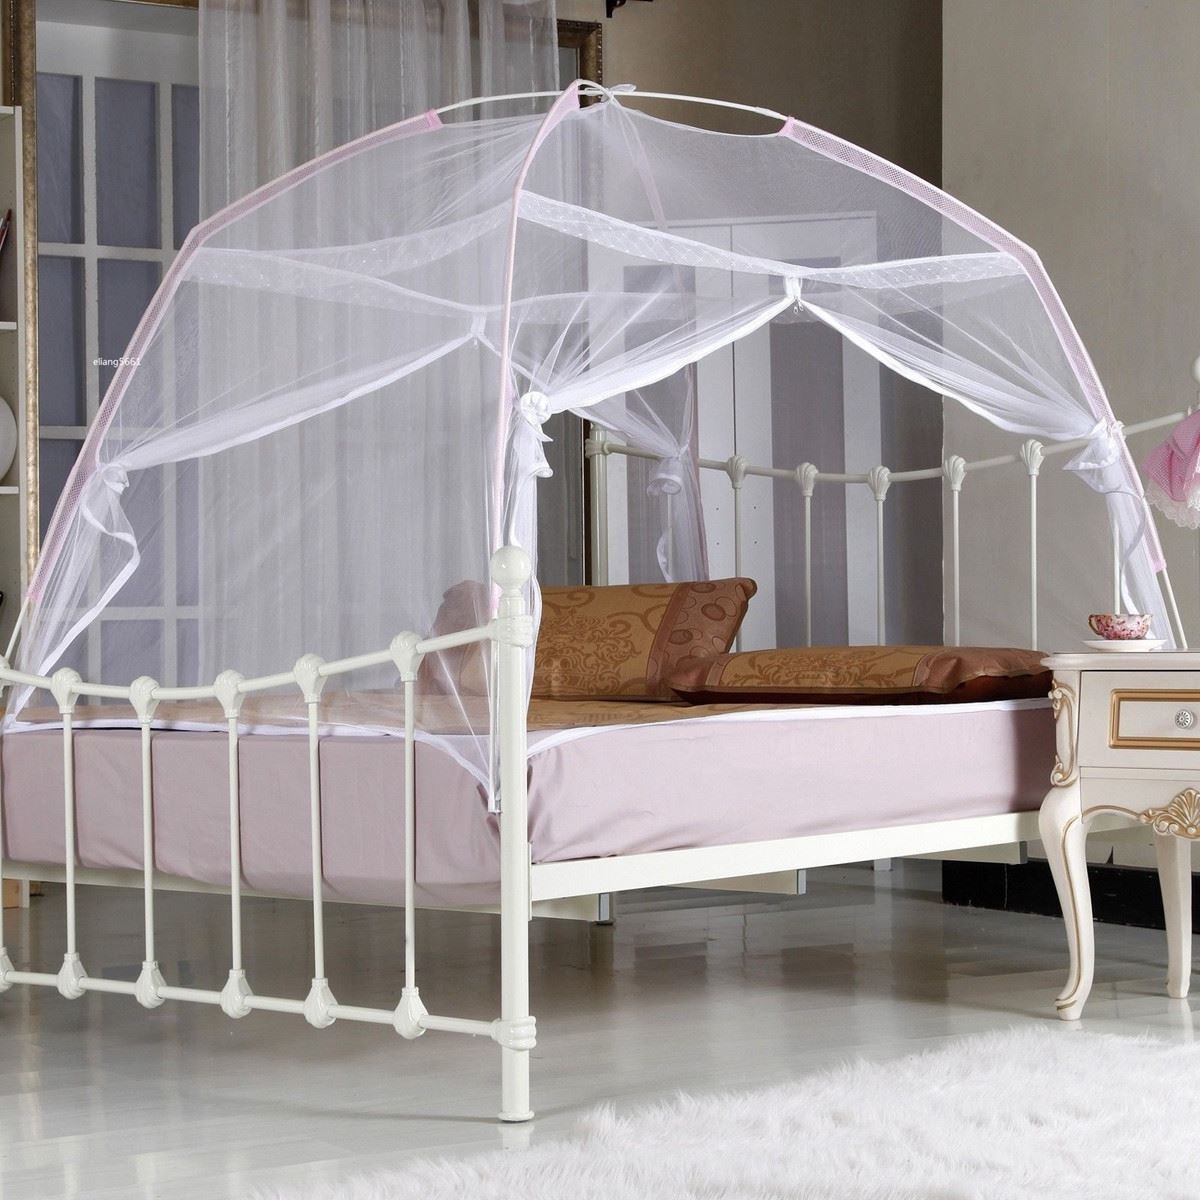 2016 Summer Portable Folding Mesh Insect Bed Mongolian Yurt Canopy Curtain Dome Tent Mosquito Net Tent For Boy Girl Bedding-in Mosquito Net from Home ... & 2016 Summer Portable Folding Mesh Insect Bed Mongolian Yurt Canopy ...